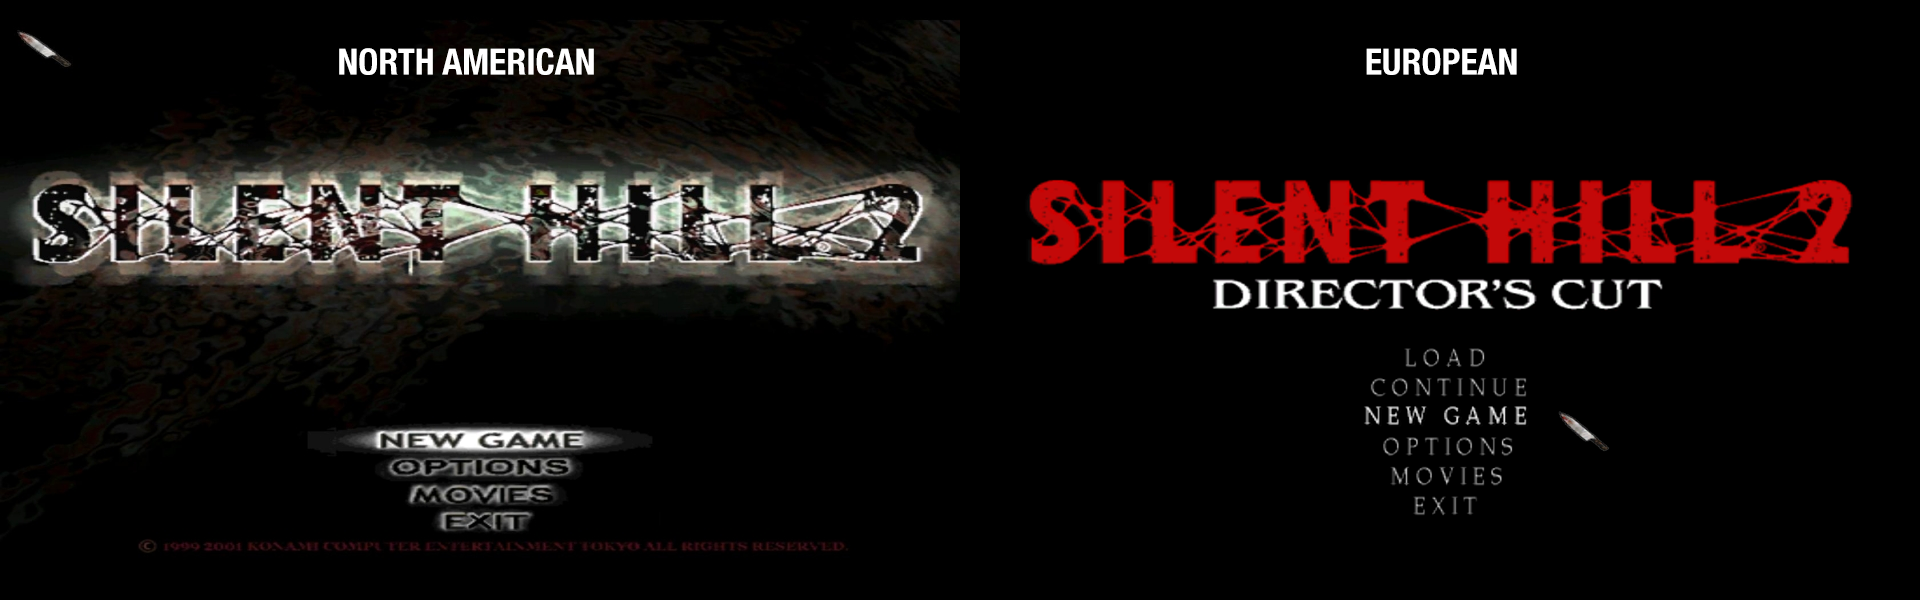 Silent Hill 2 Porting Audio From Ps2 Build To Pc Issue 6